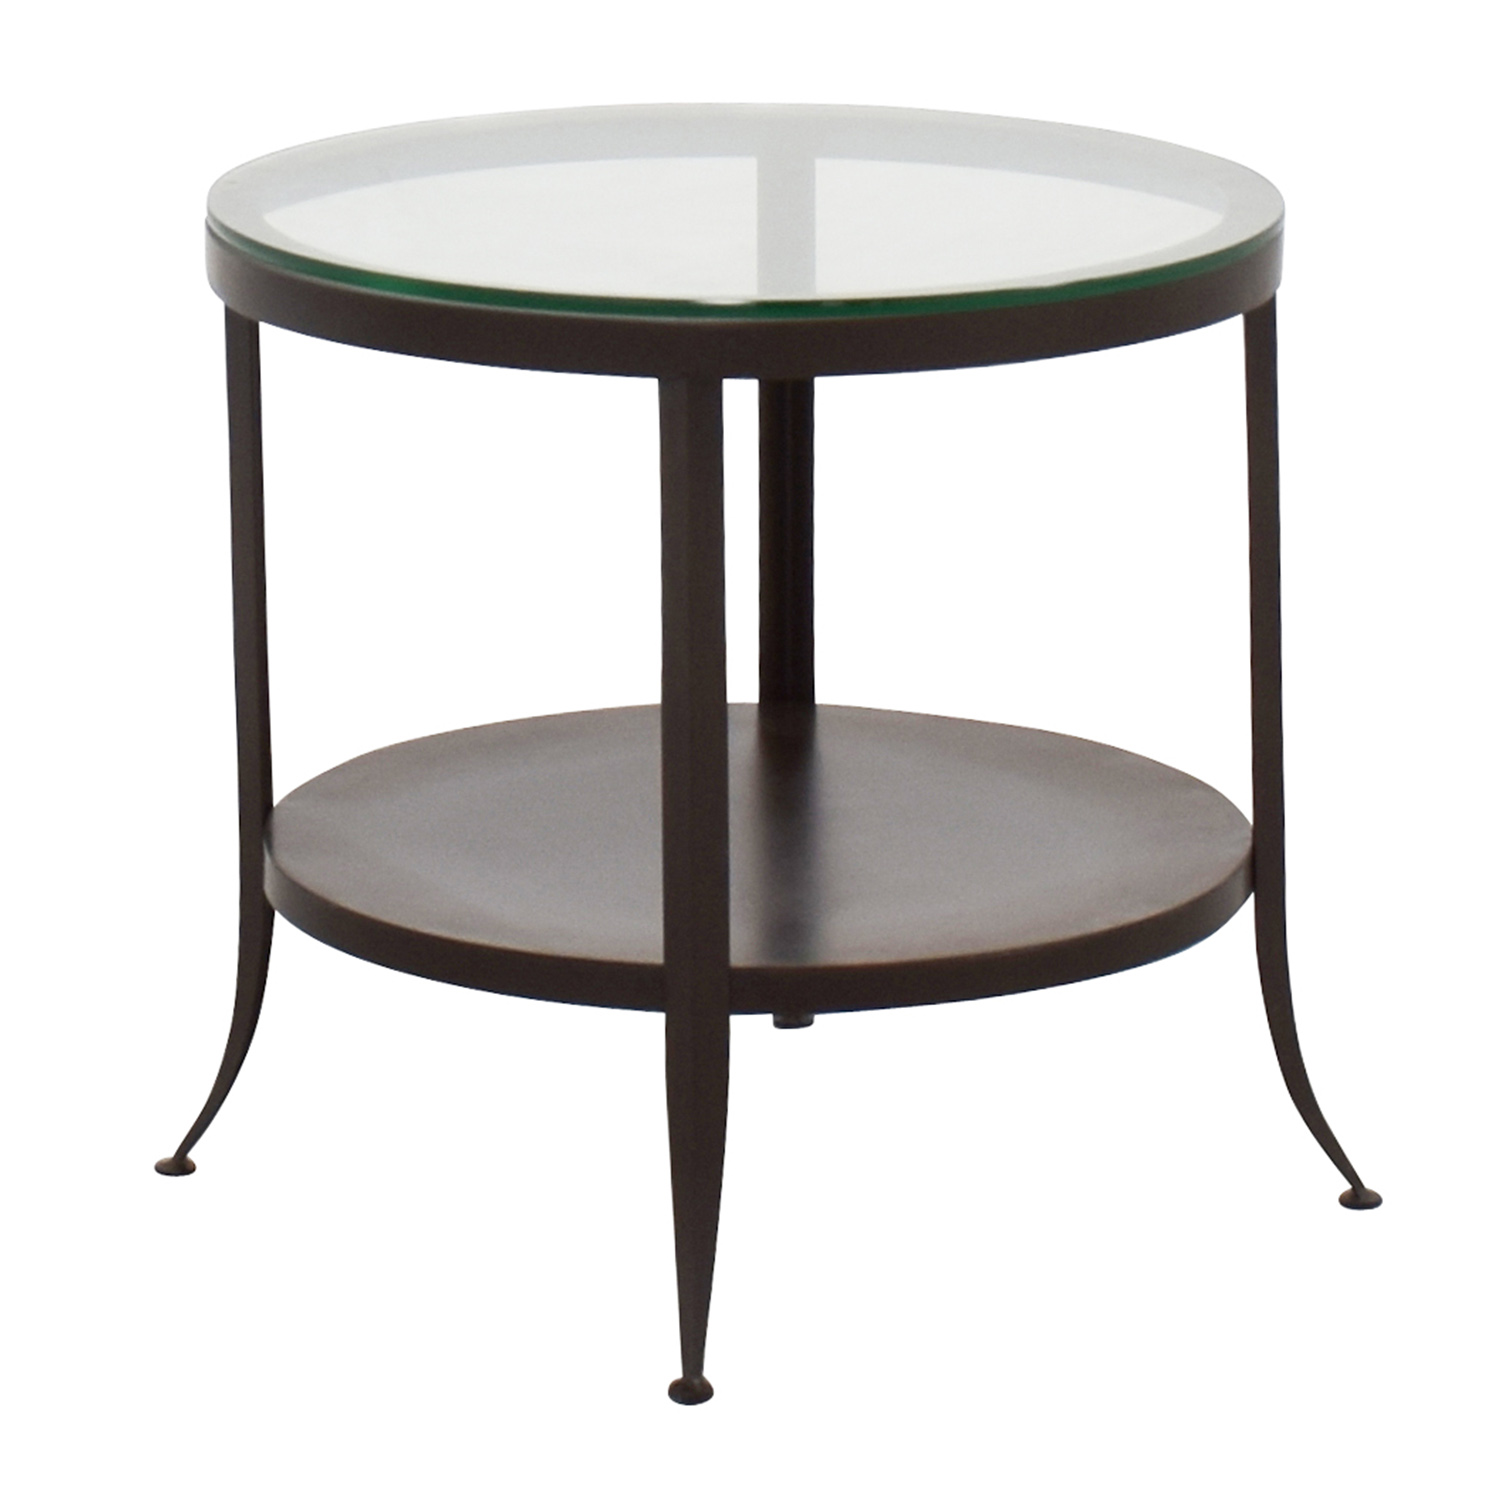 Crate and Barrel Crate & Barrel Round Glass Top End Table